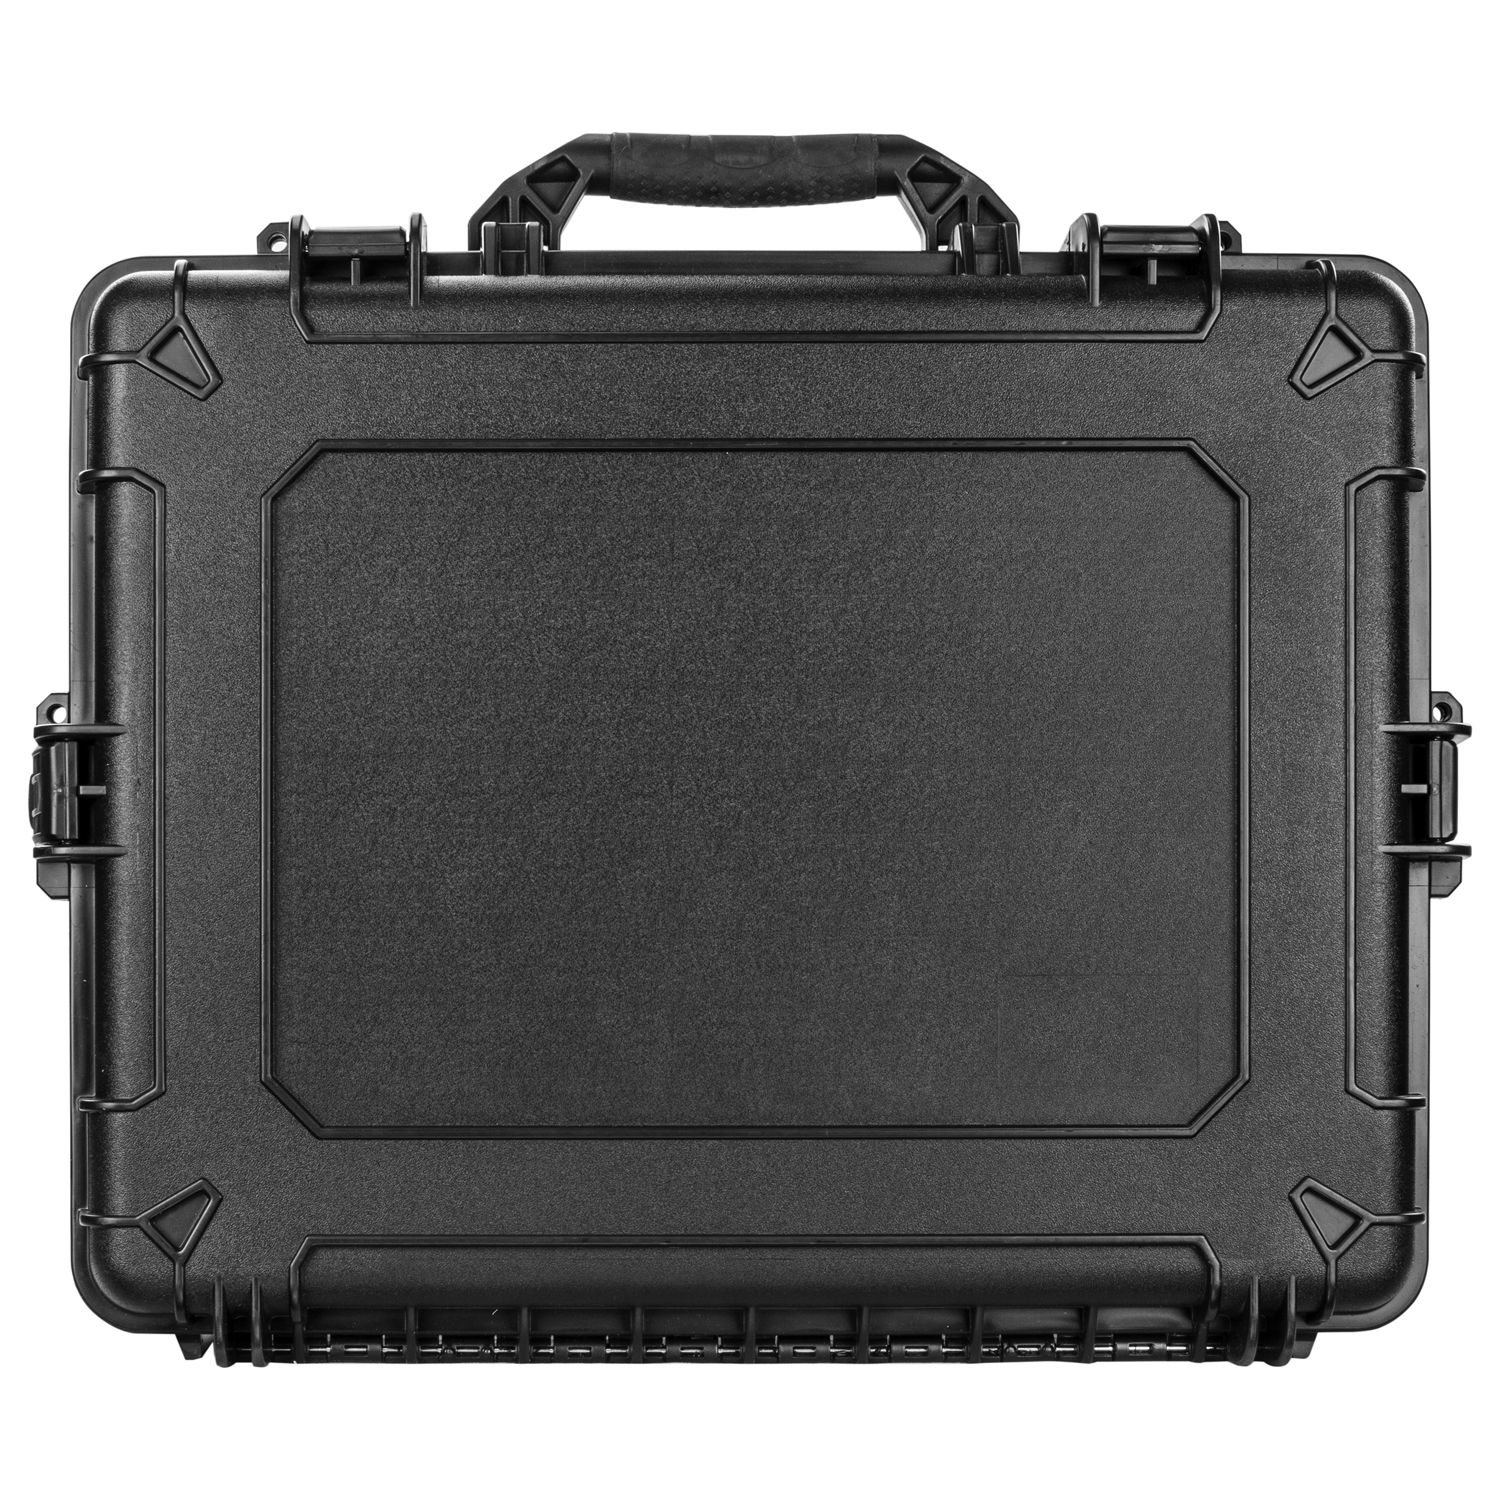 Odyssey VU420514W Vulcan Waterproof Keyboard Case with Wheels